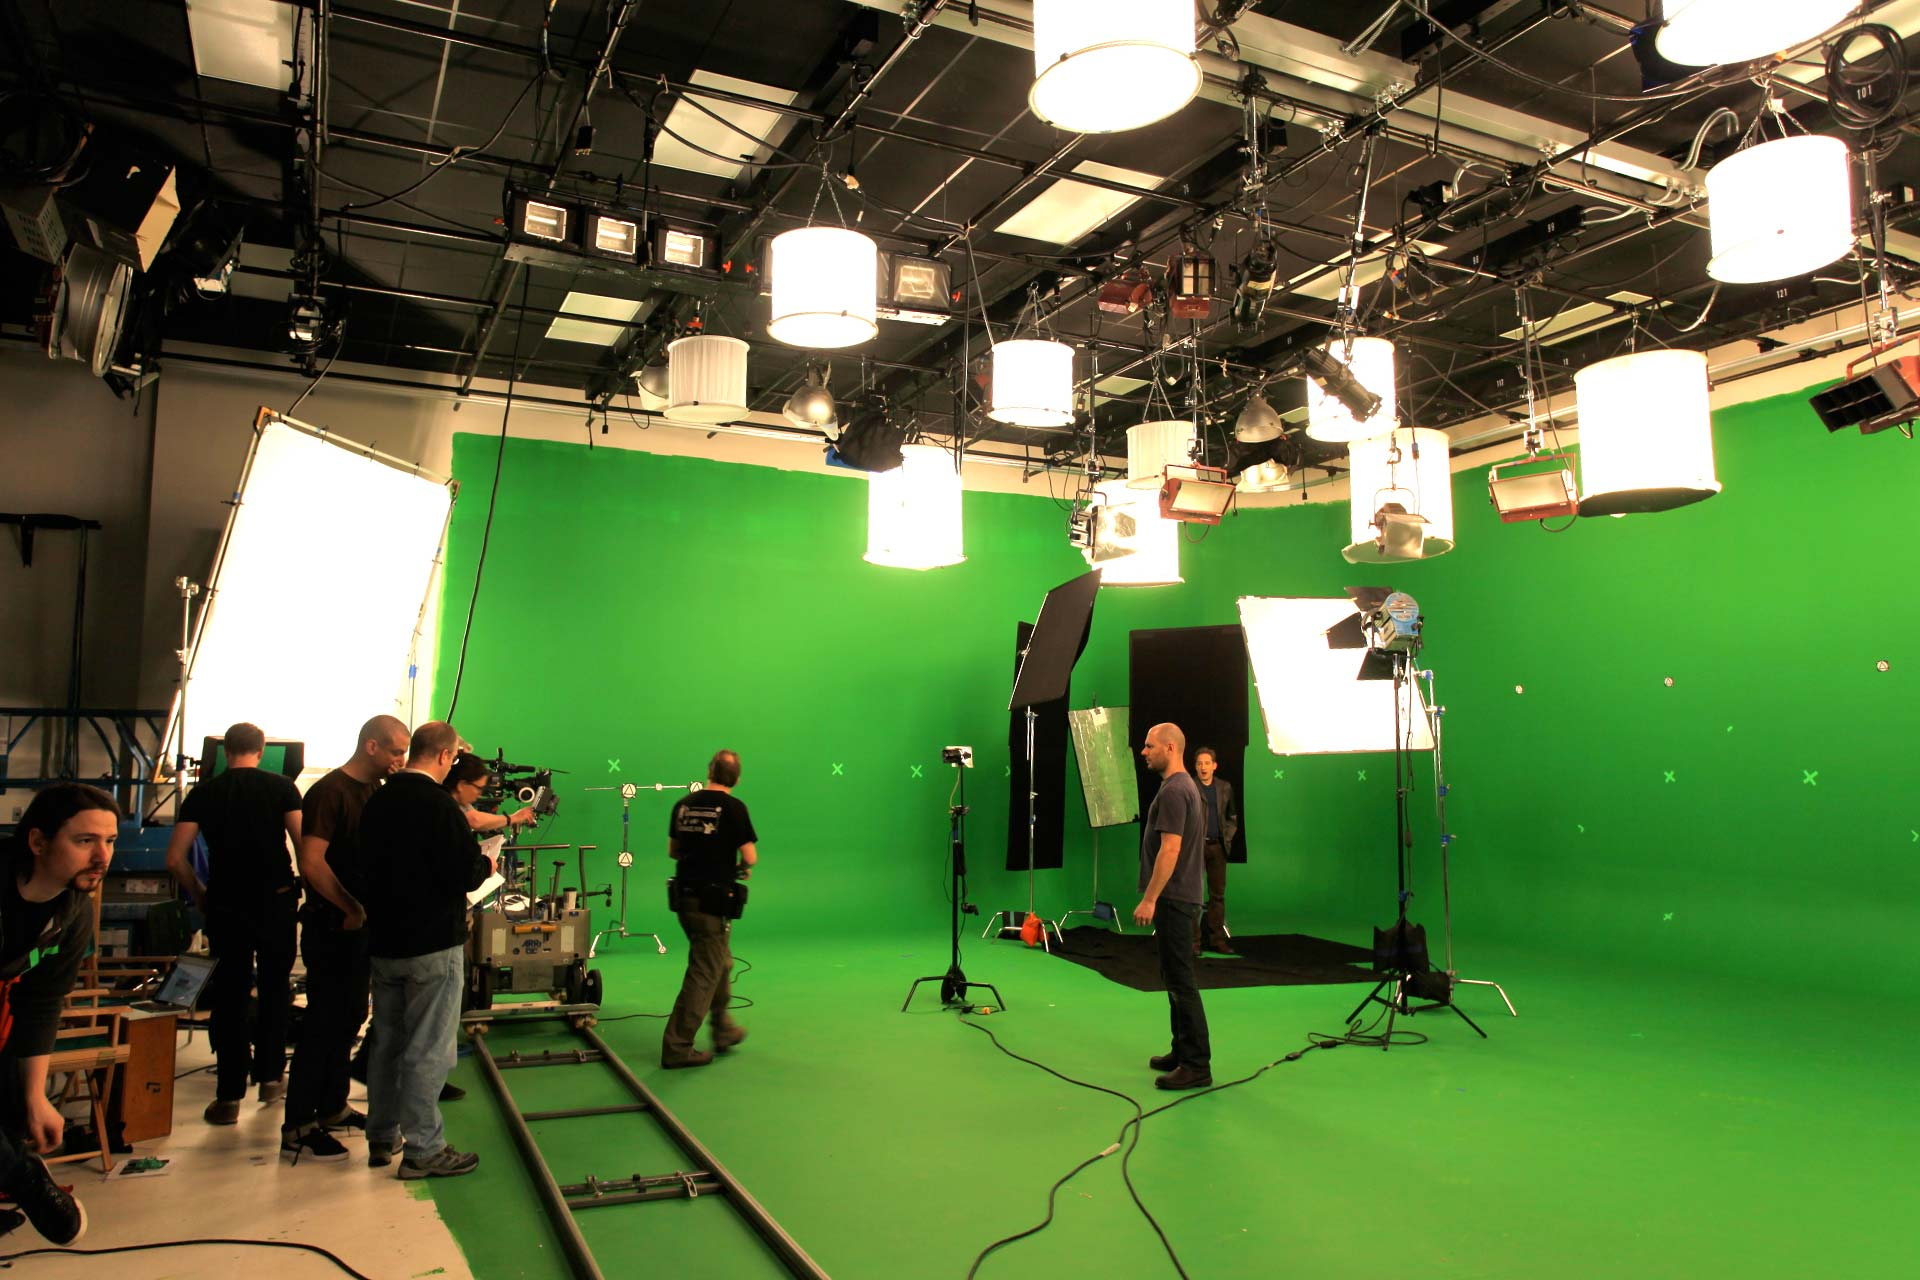 Production Photo of shoot for NOVA WGBH Boston in Studio a